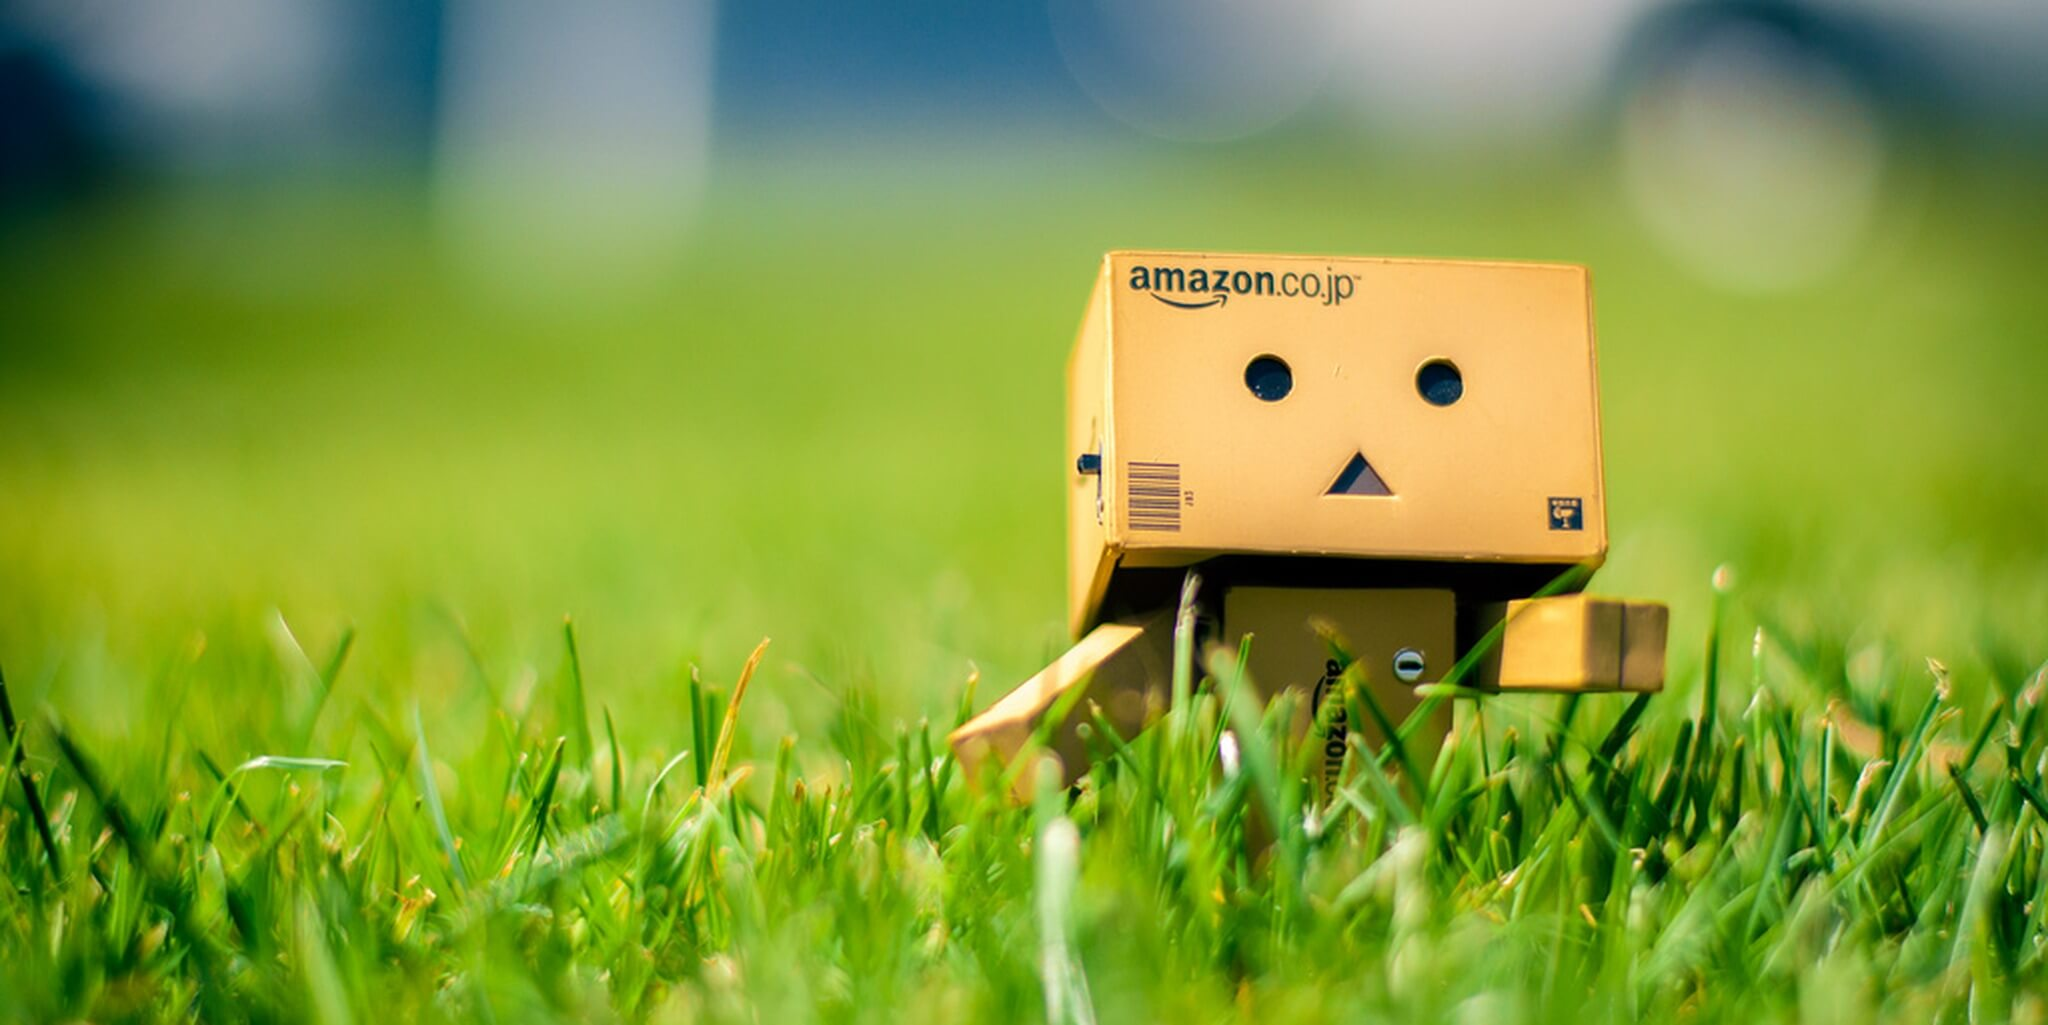 Amazon Prime is now $119 per year: Here's what you get, so you can make up your mind